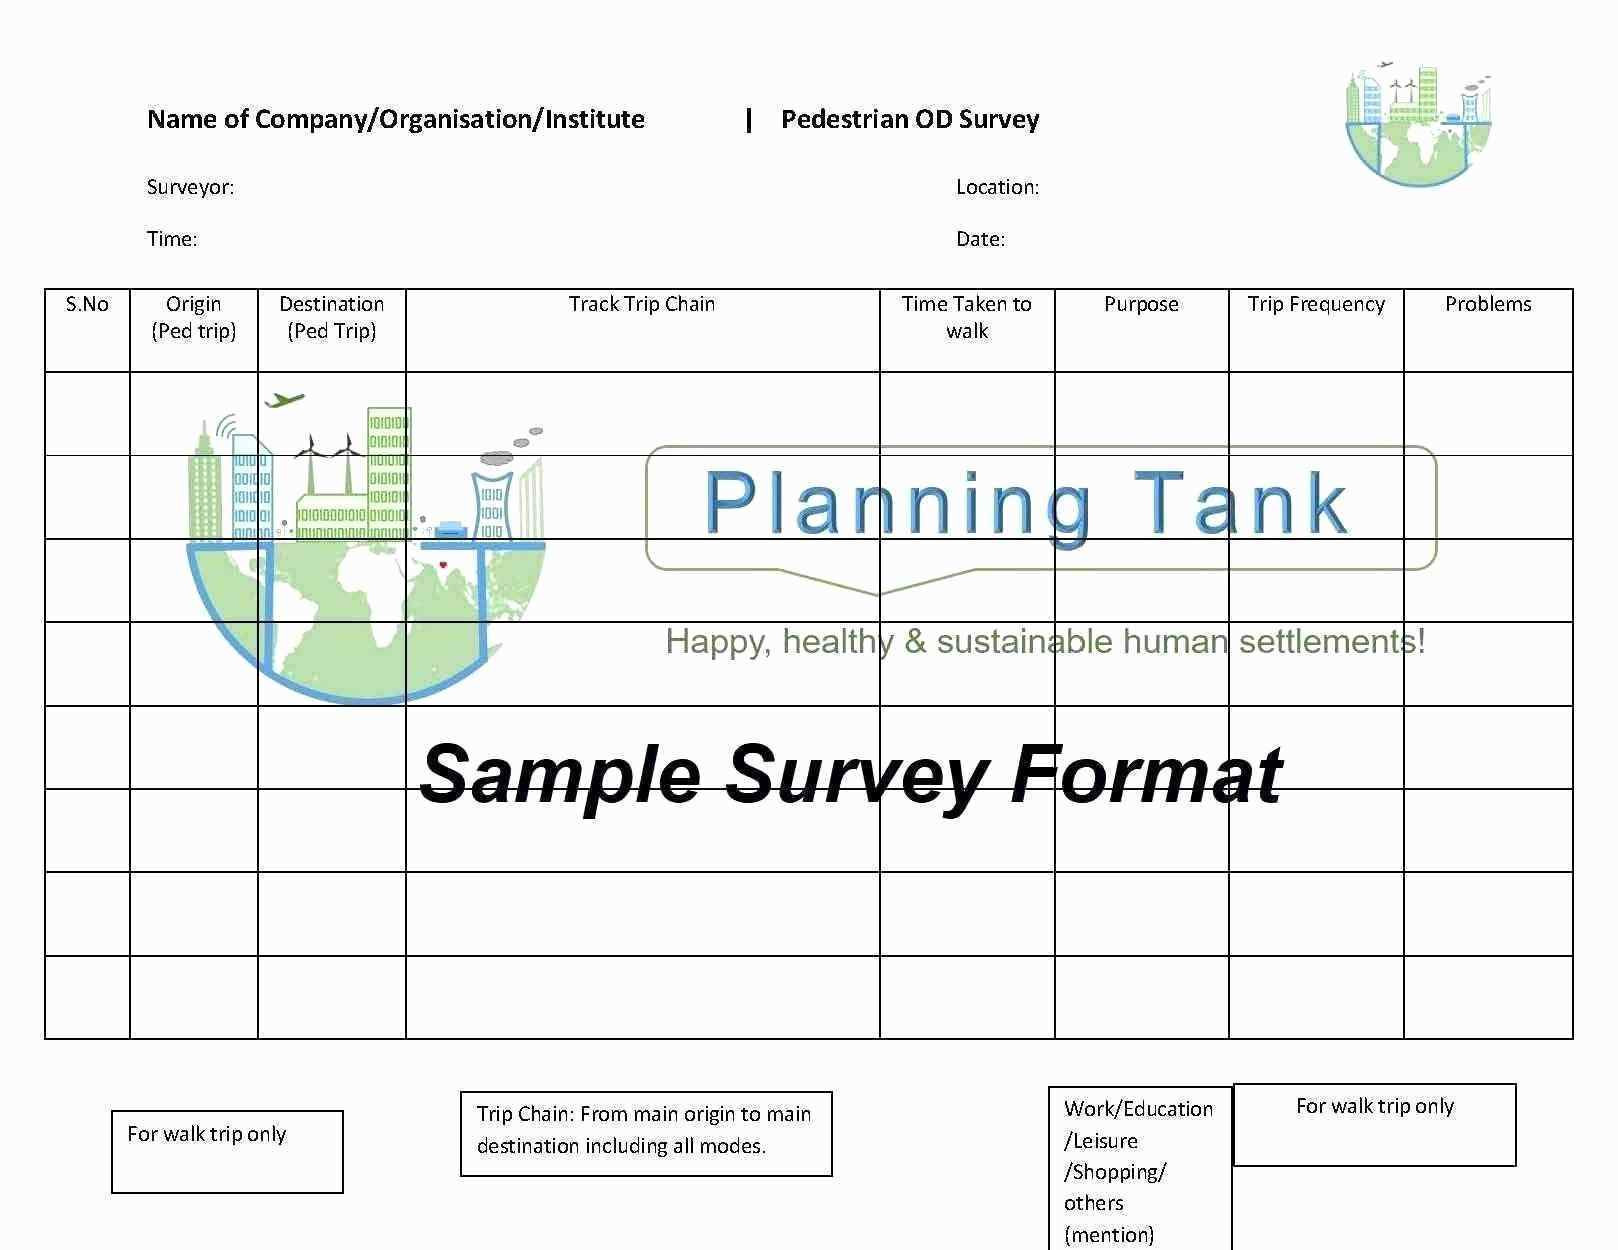 W2 Employee Form 2018 Lovely Free W2 Form Template New Printable W2 Form For Employees 18 Lovely